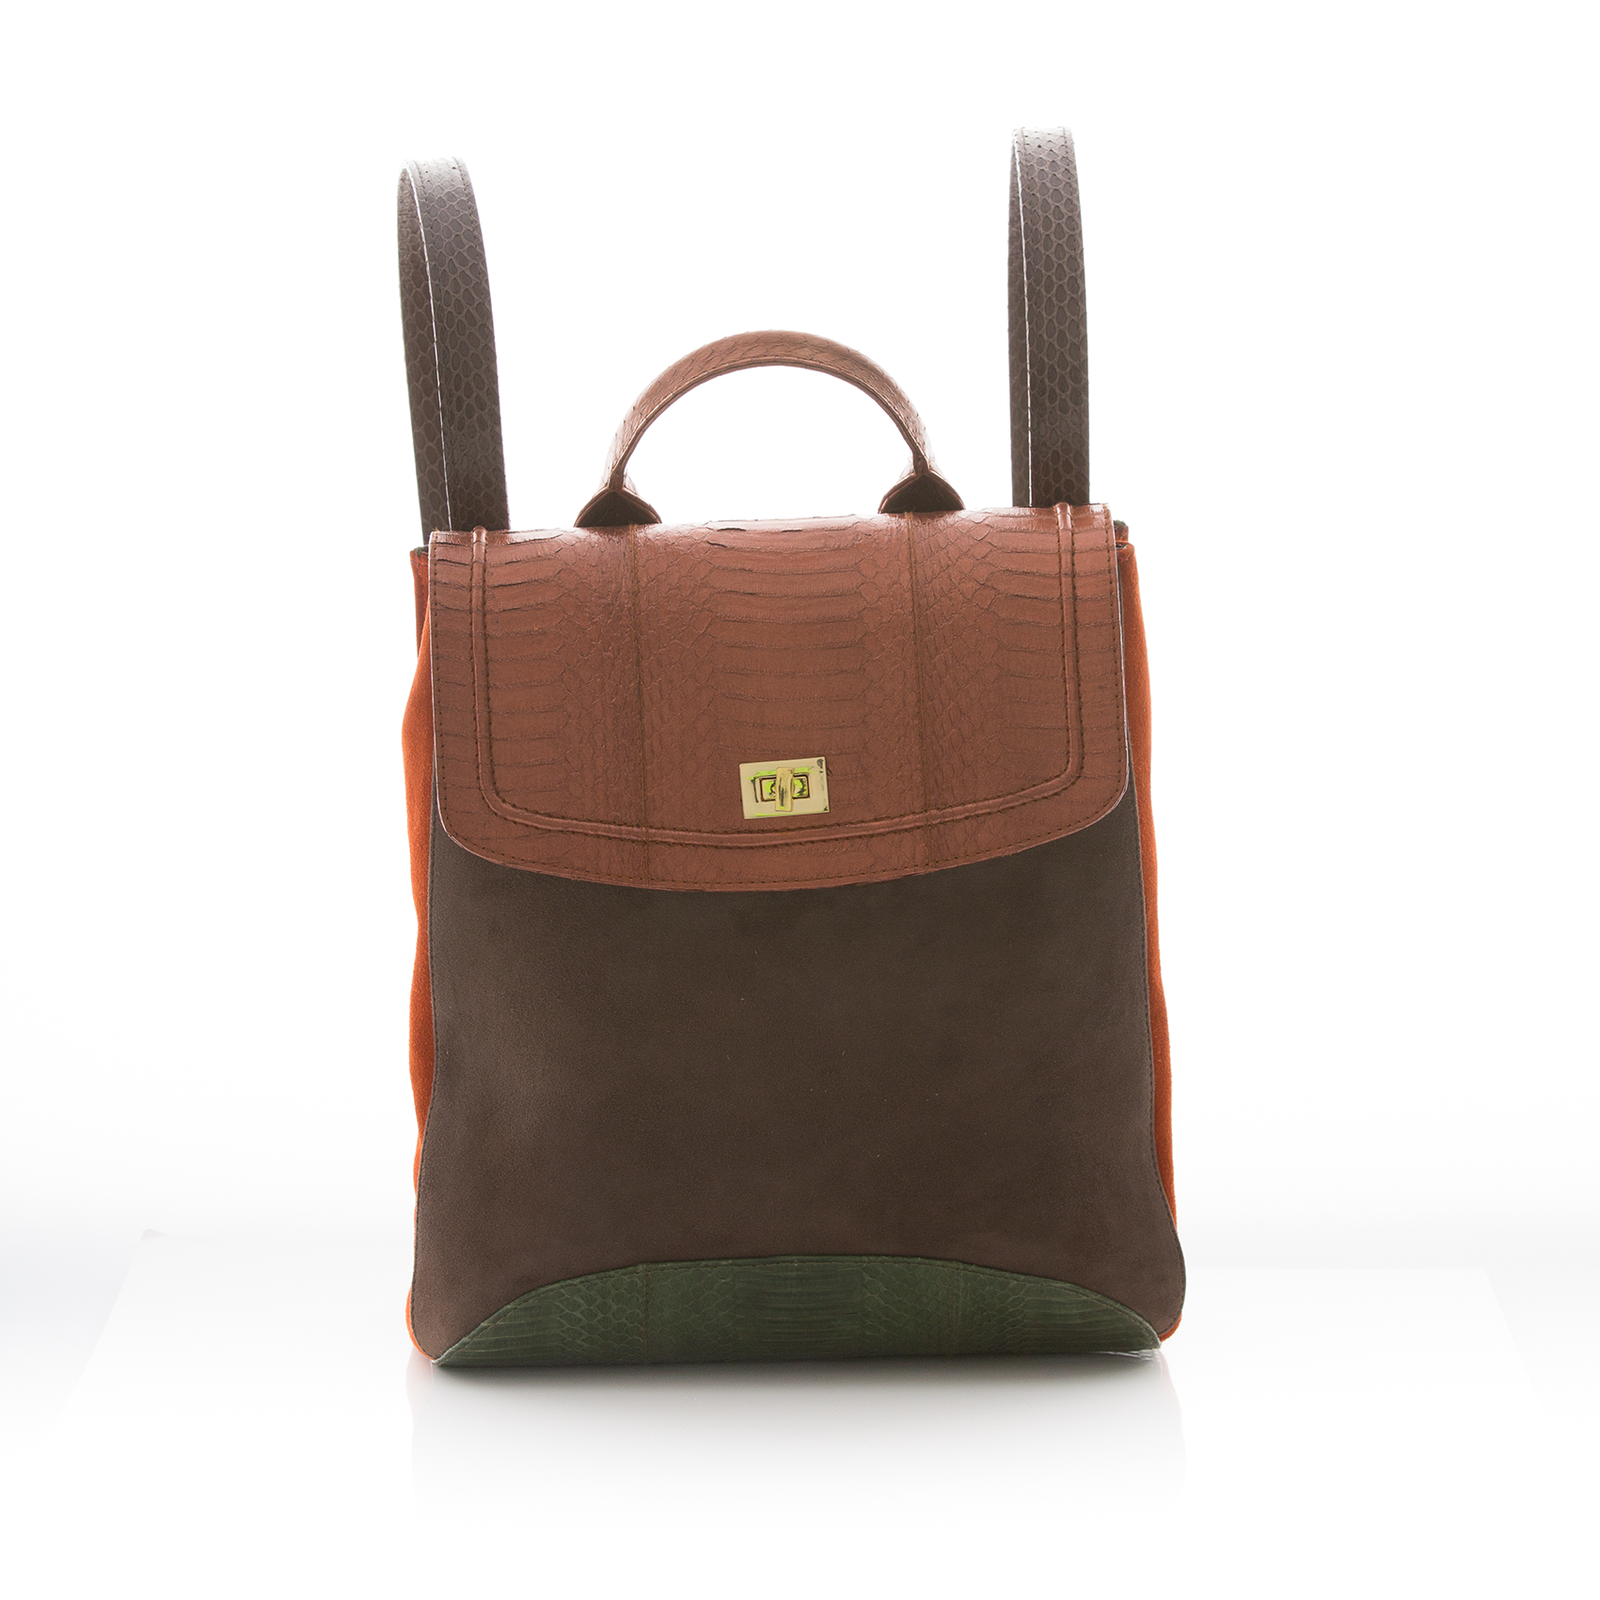 Bagpack BAGIFIK Bronze and Summer Green Cobra, Mice and Paprika Suede